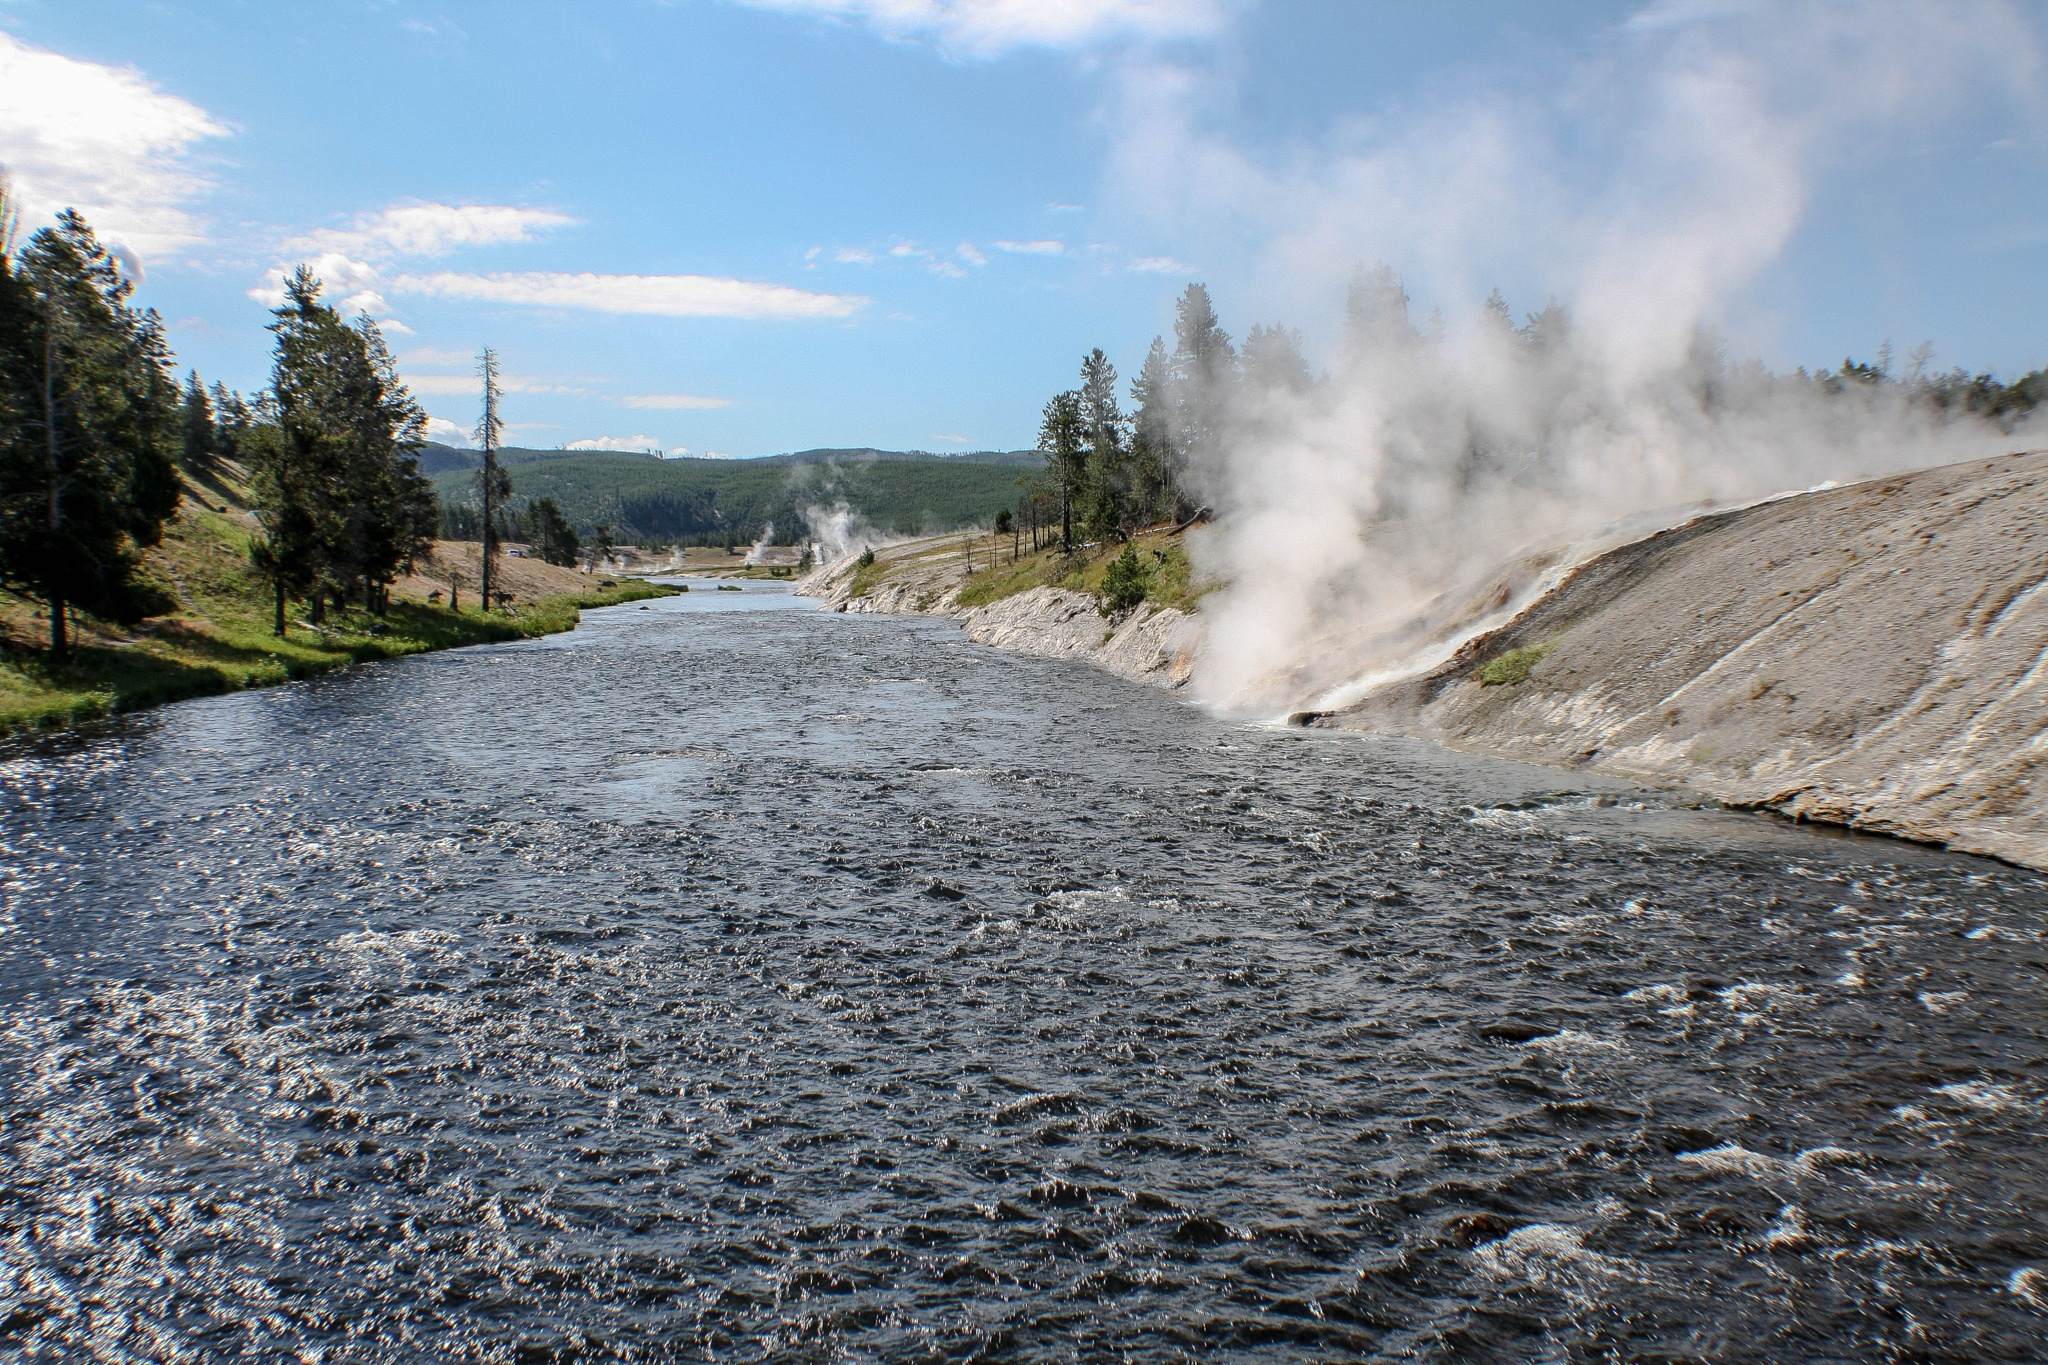 Along One of the Yellowstone Rivers by Peter Cavaliere